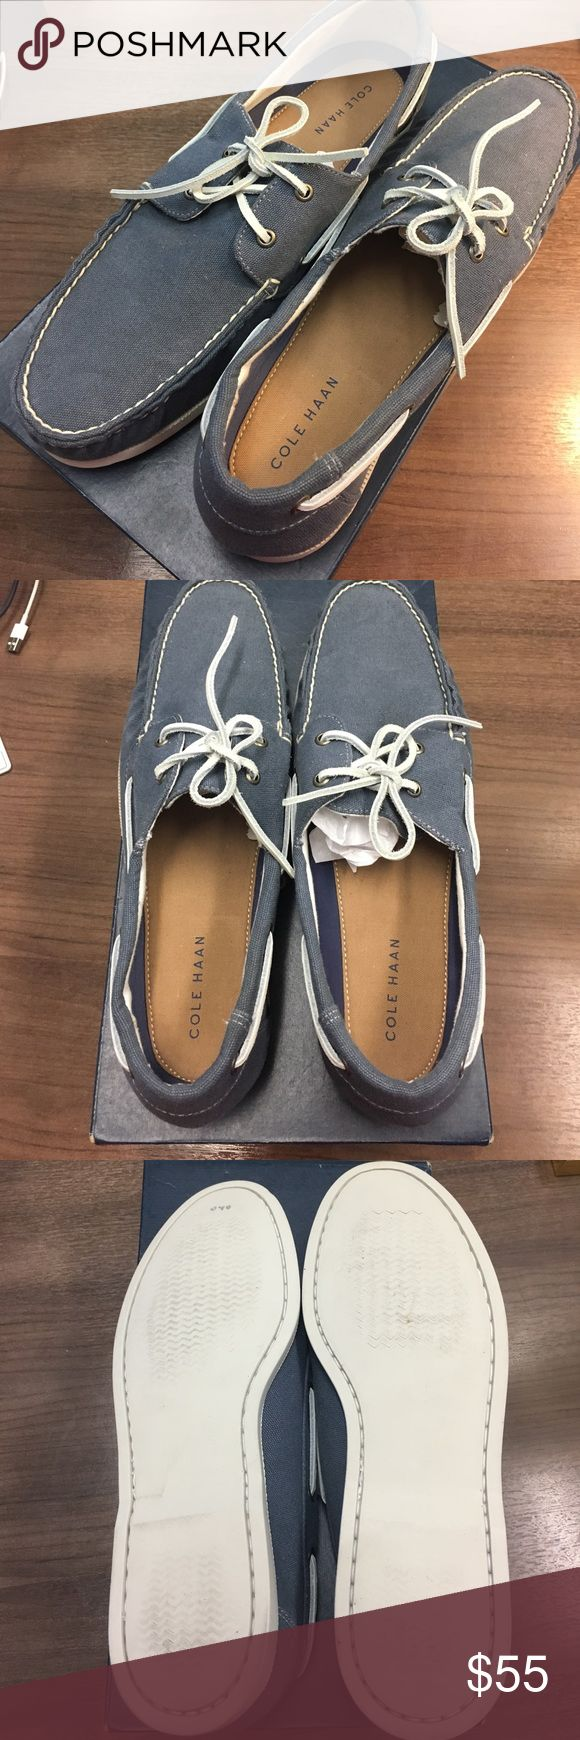 Cole Haan Men's Boat Shoe Casual boat shoe, denim blue canvas material... never been worn! Perfect for summer with shorts and a tee Cole Haan Shoes Loafers & Slip-Ons